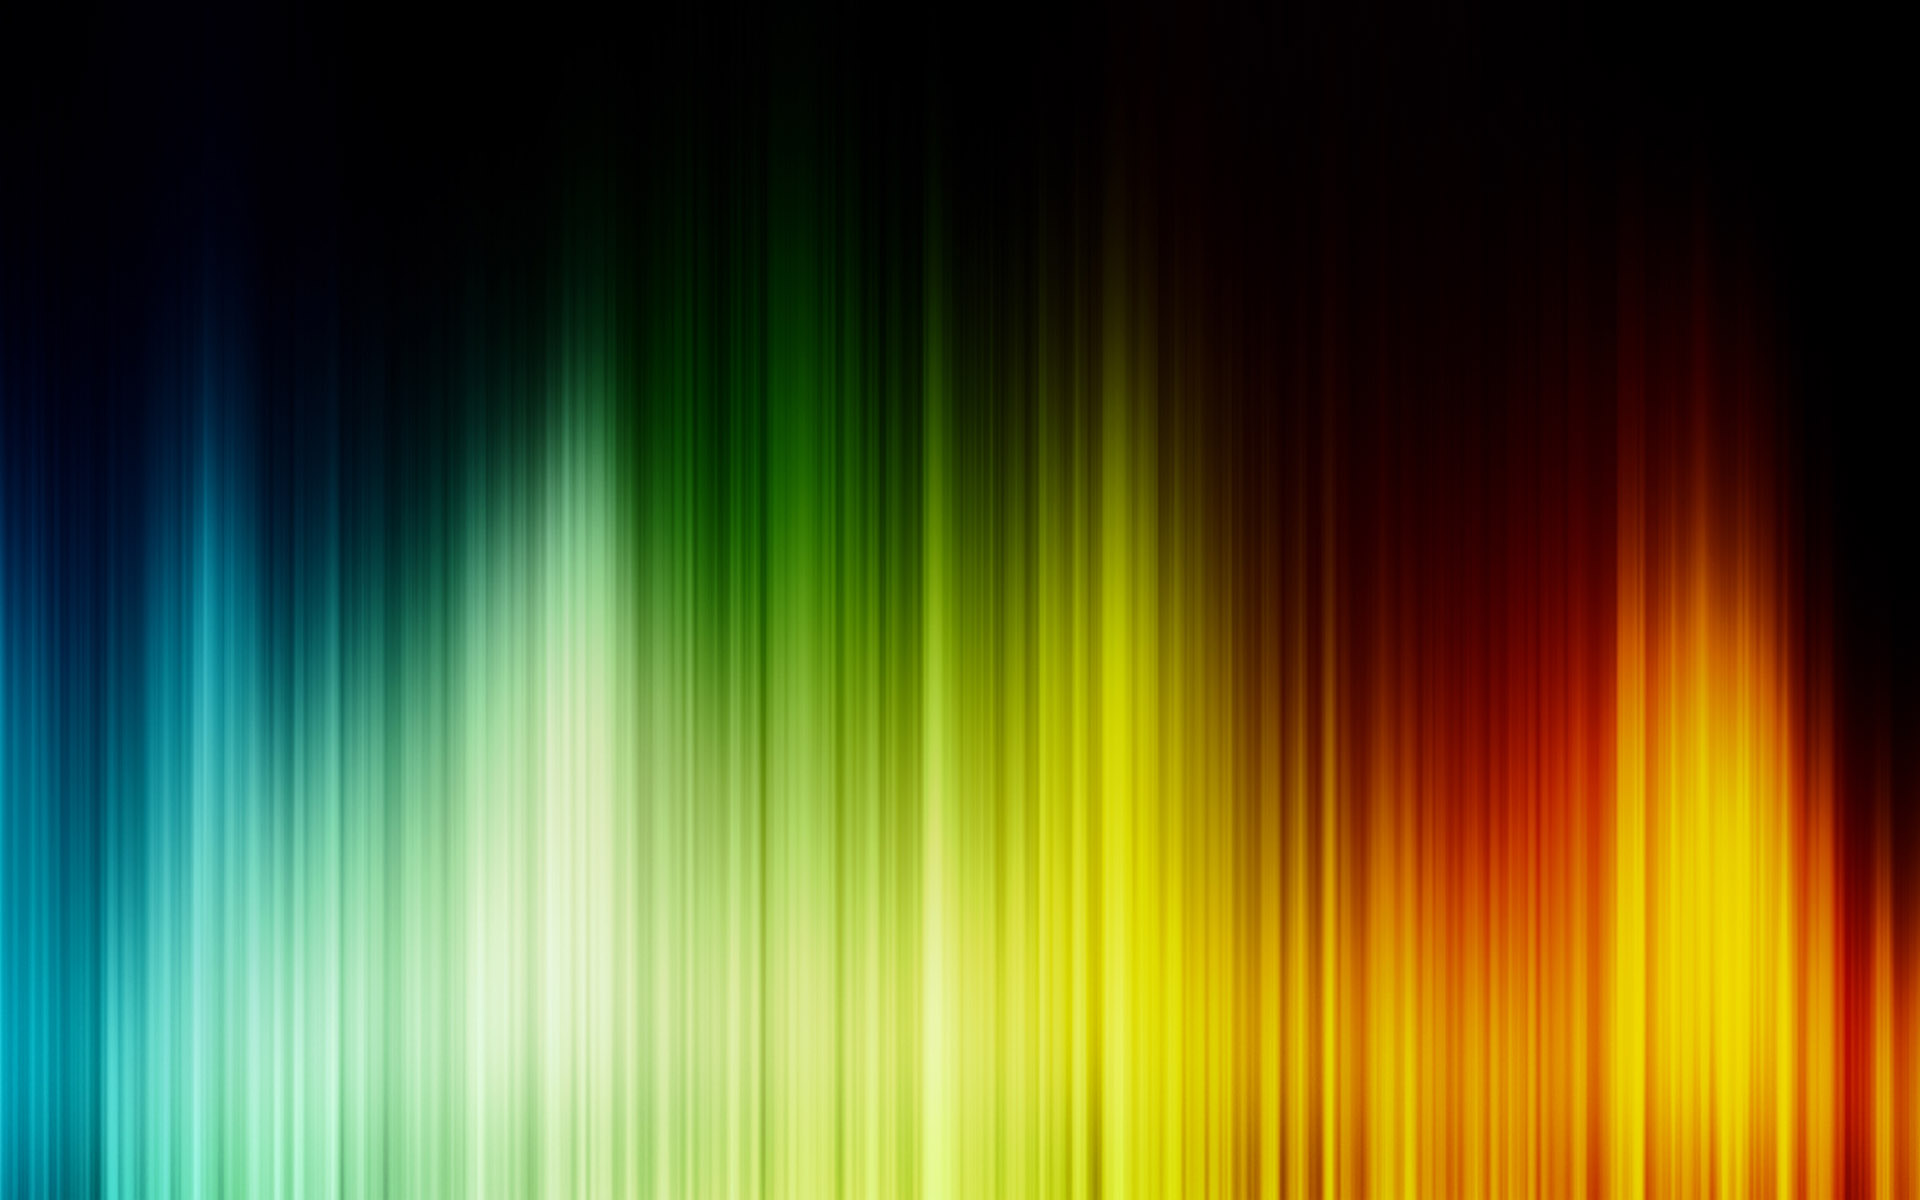 Light Spectrum Abstract Background_110 1920×1200第38张壁纸 - 猫 ...